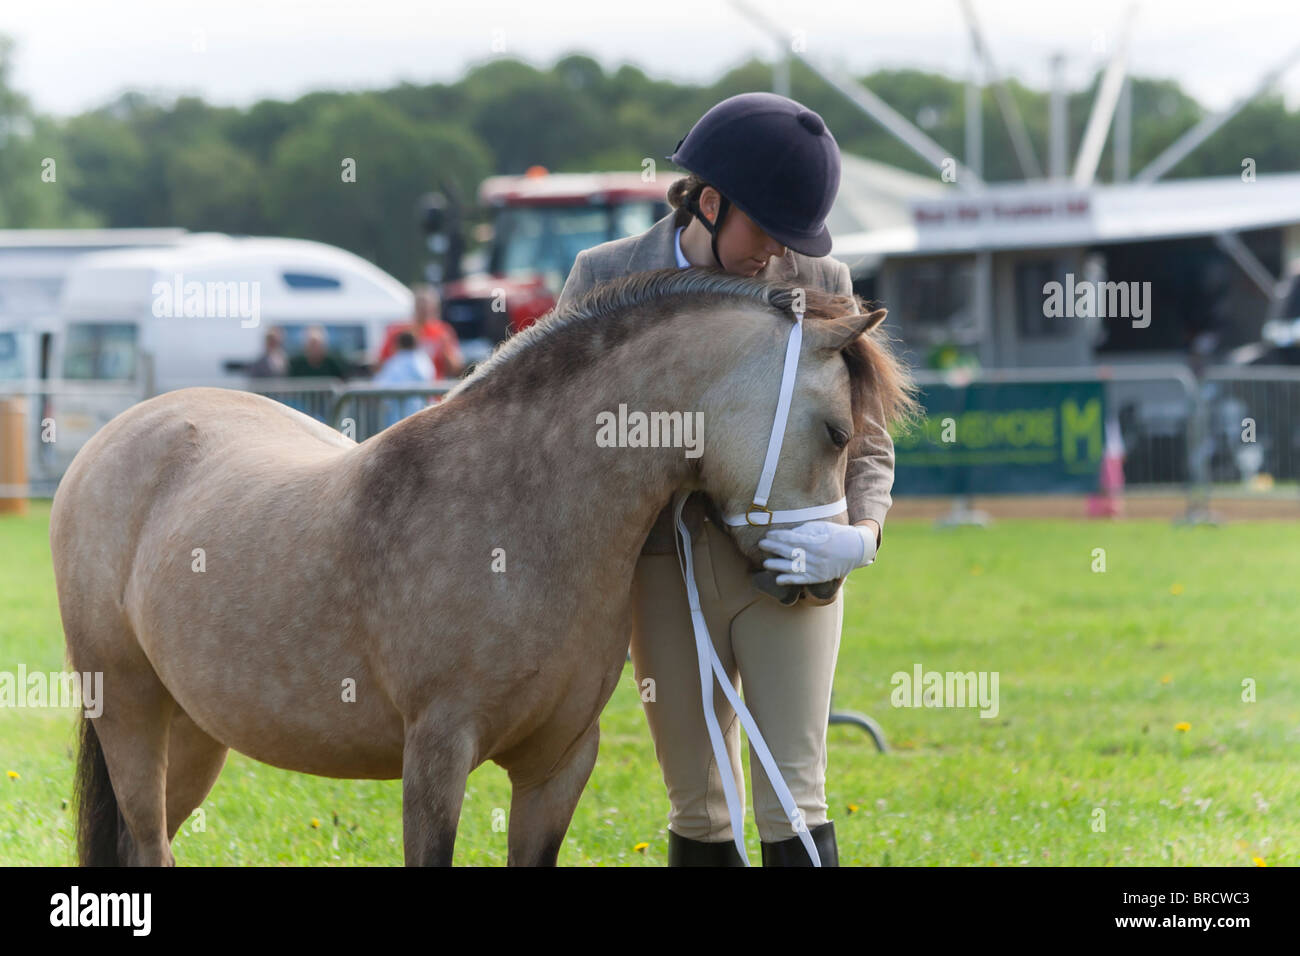 Pretty young woman hugging her pony as they compete in a horse show in  rural England 86d822a5372c